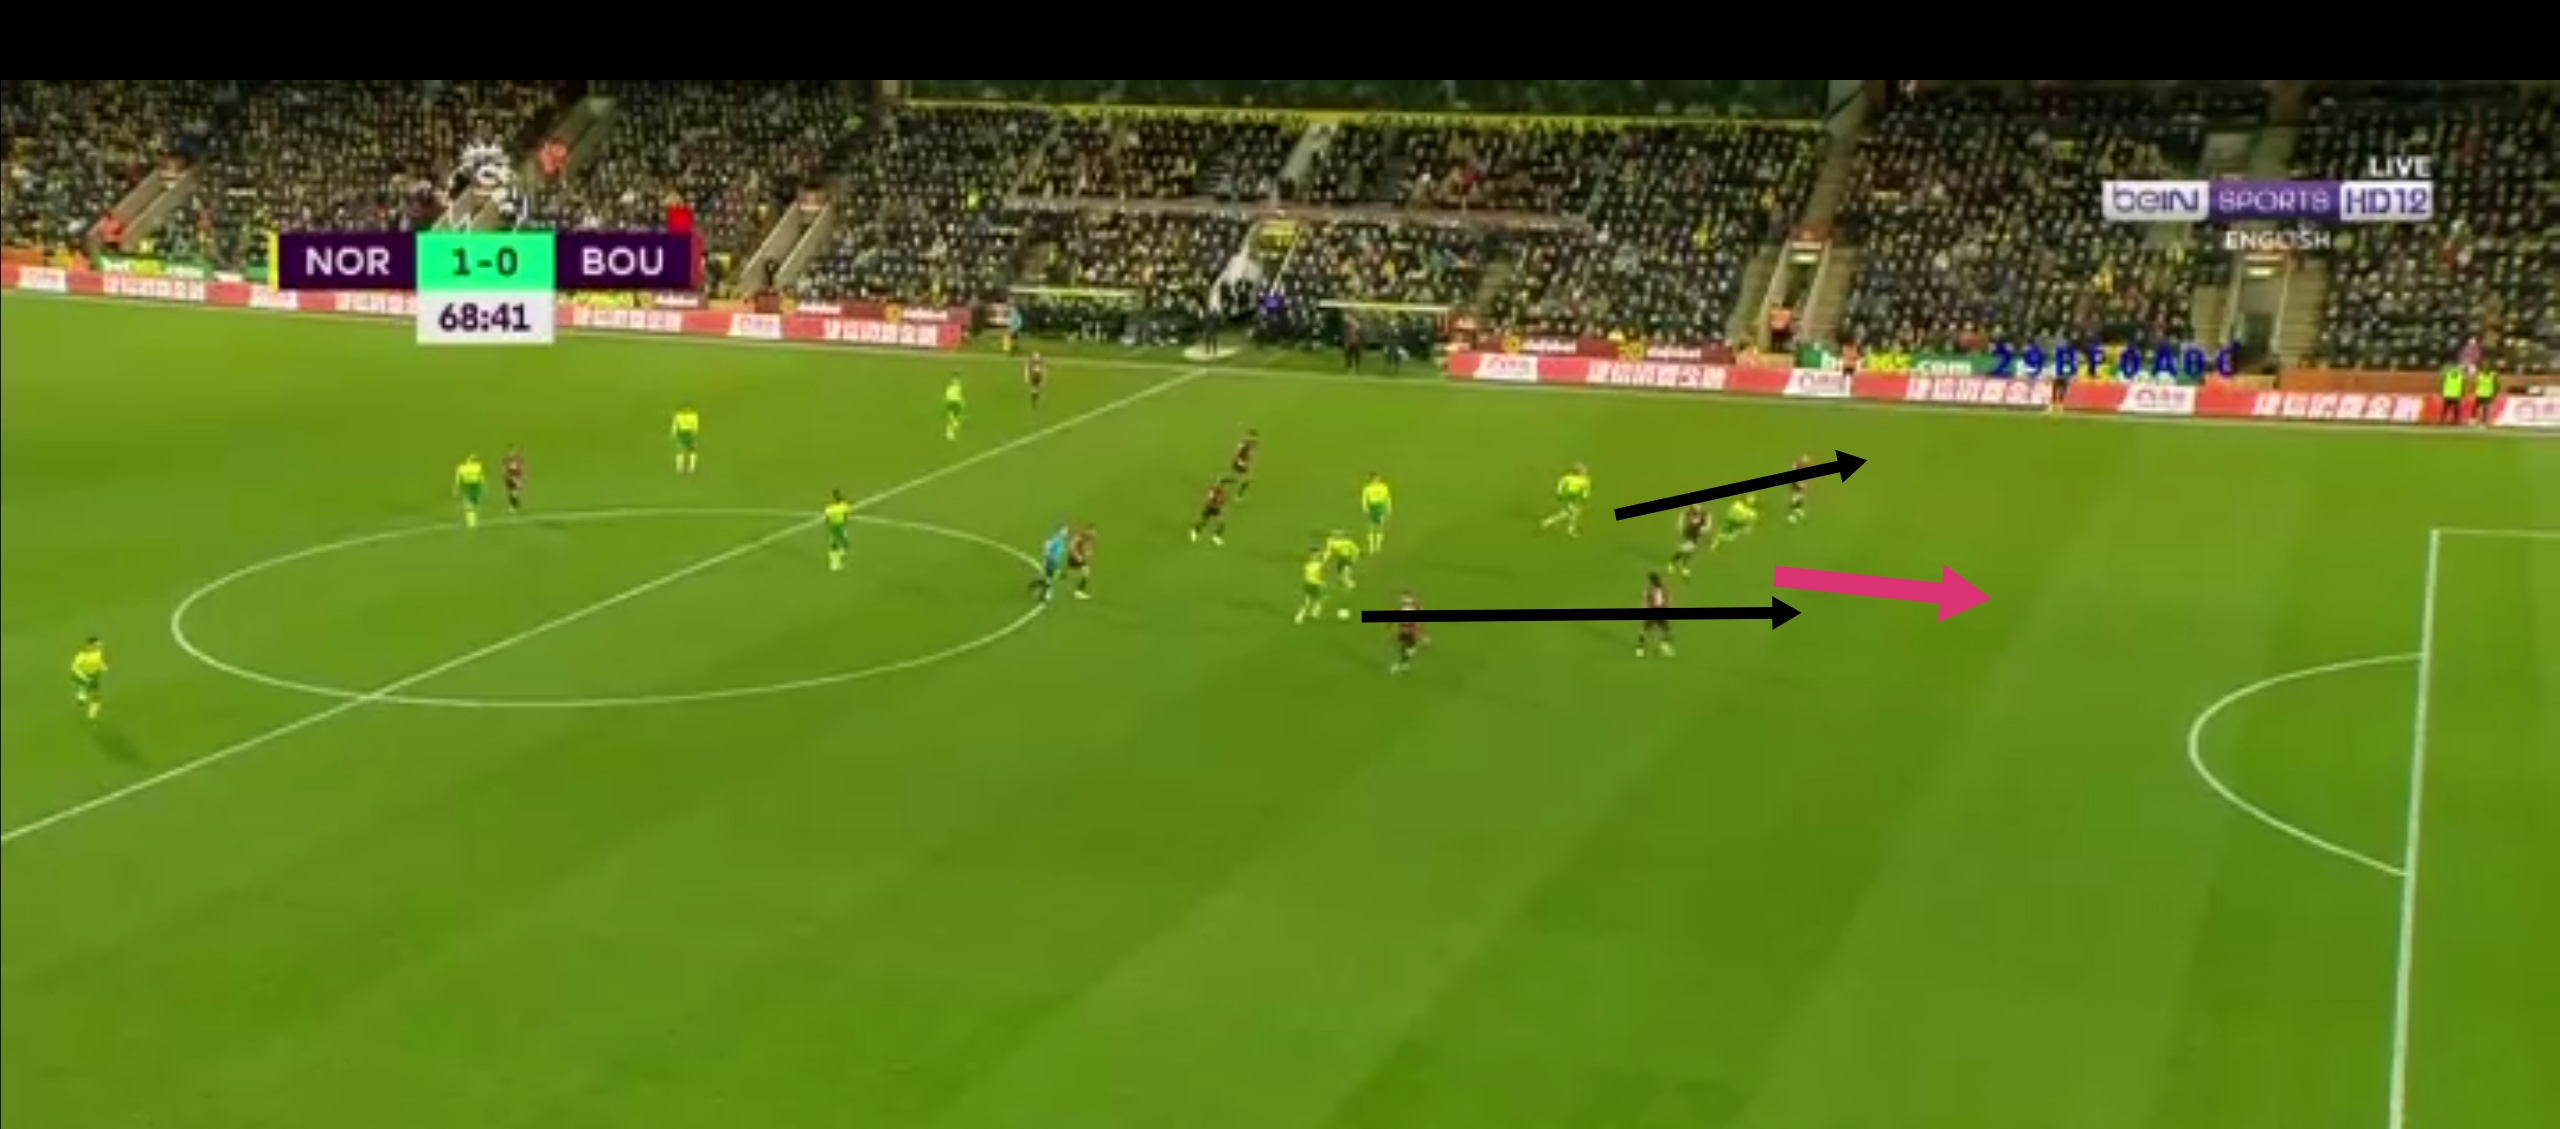 English Premier League 2020: Norwich vs Bournemouth – tactical analysis